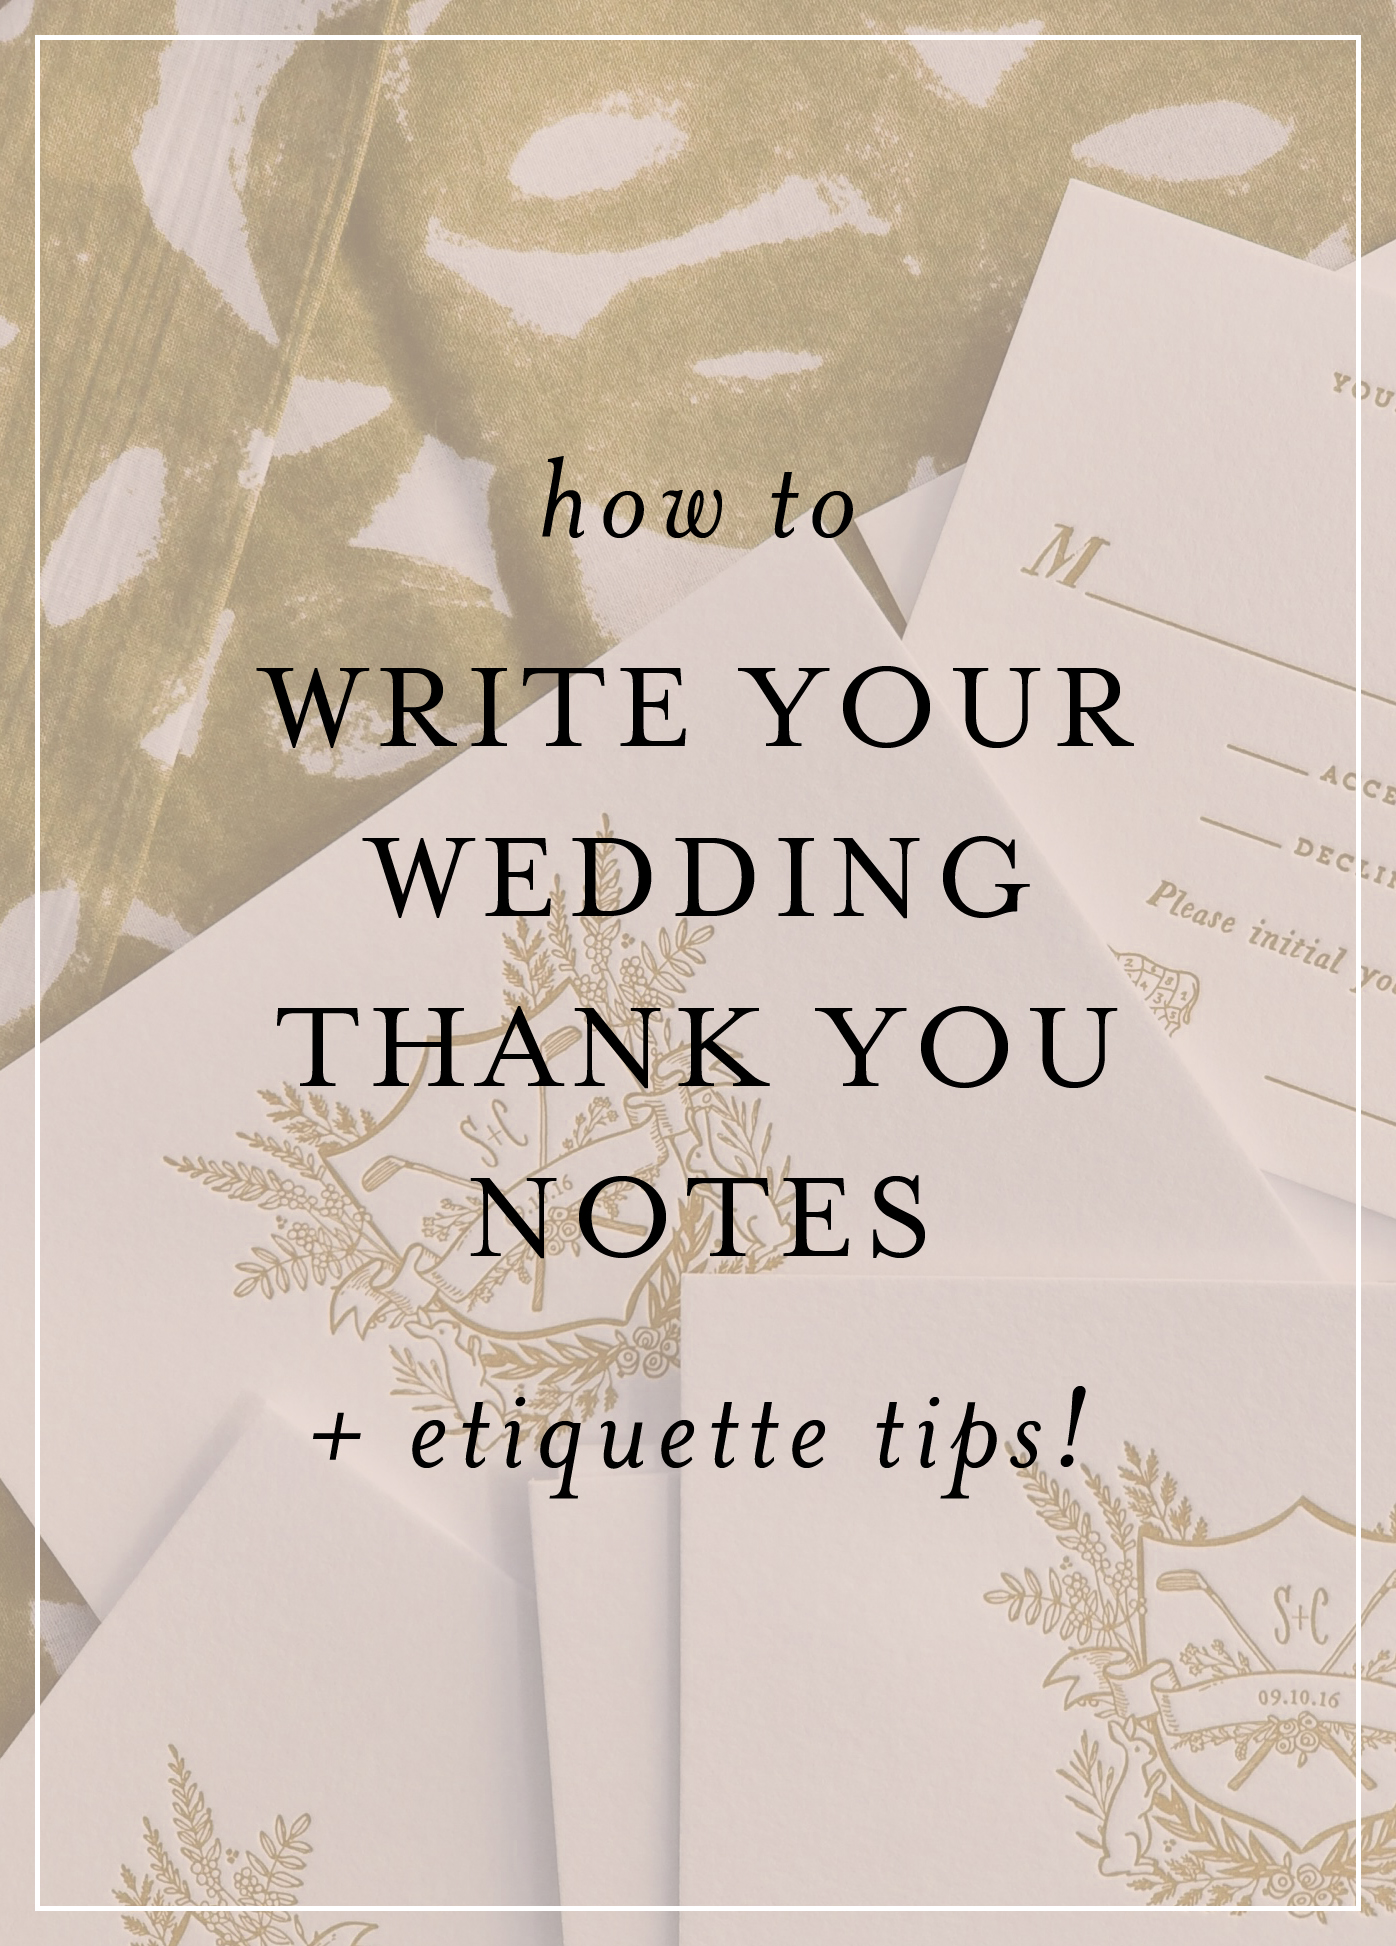 Planning A Wedding Is Time Consuming And Exhausting, And After The Madness  Of The Big Day… You Still Have A Bit Of Work Left Ahead Of You! Writing Thank  You